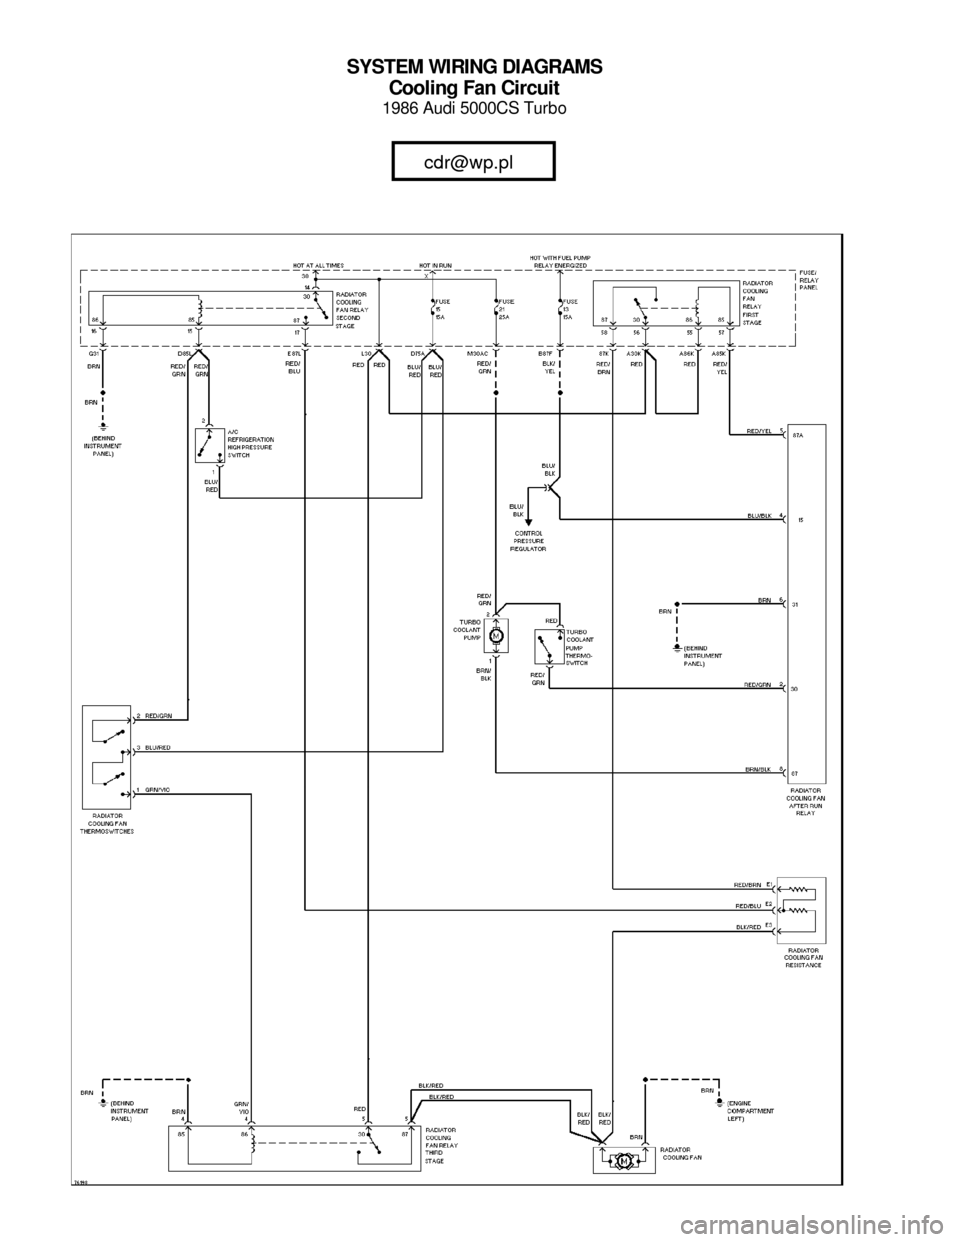 w960_833 0 audi 5000cs 1986 c2 system wiring diagram citroen c2 wiring diagram pdf at gsmx.co